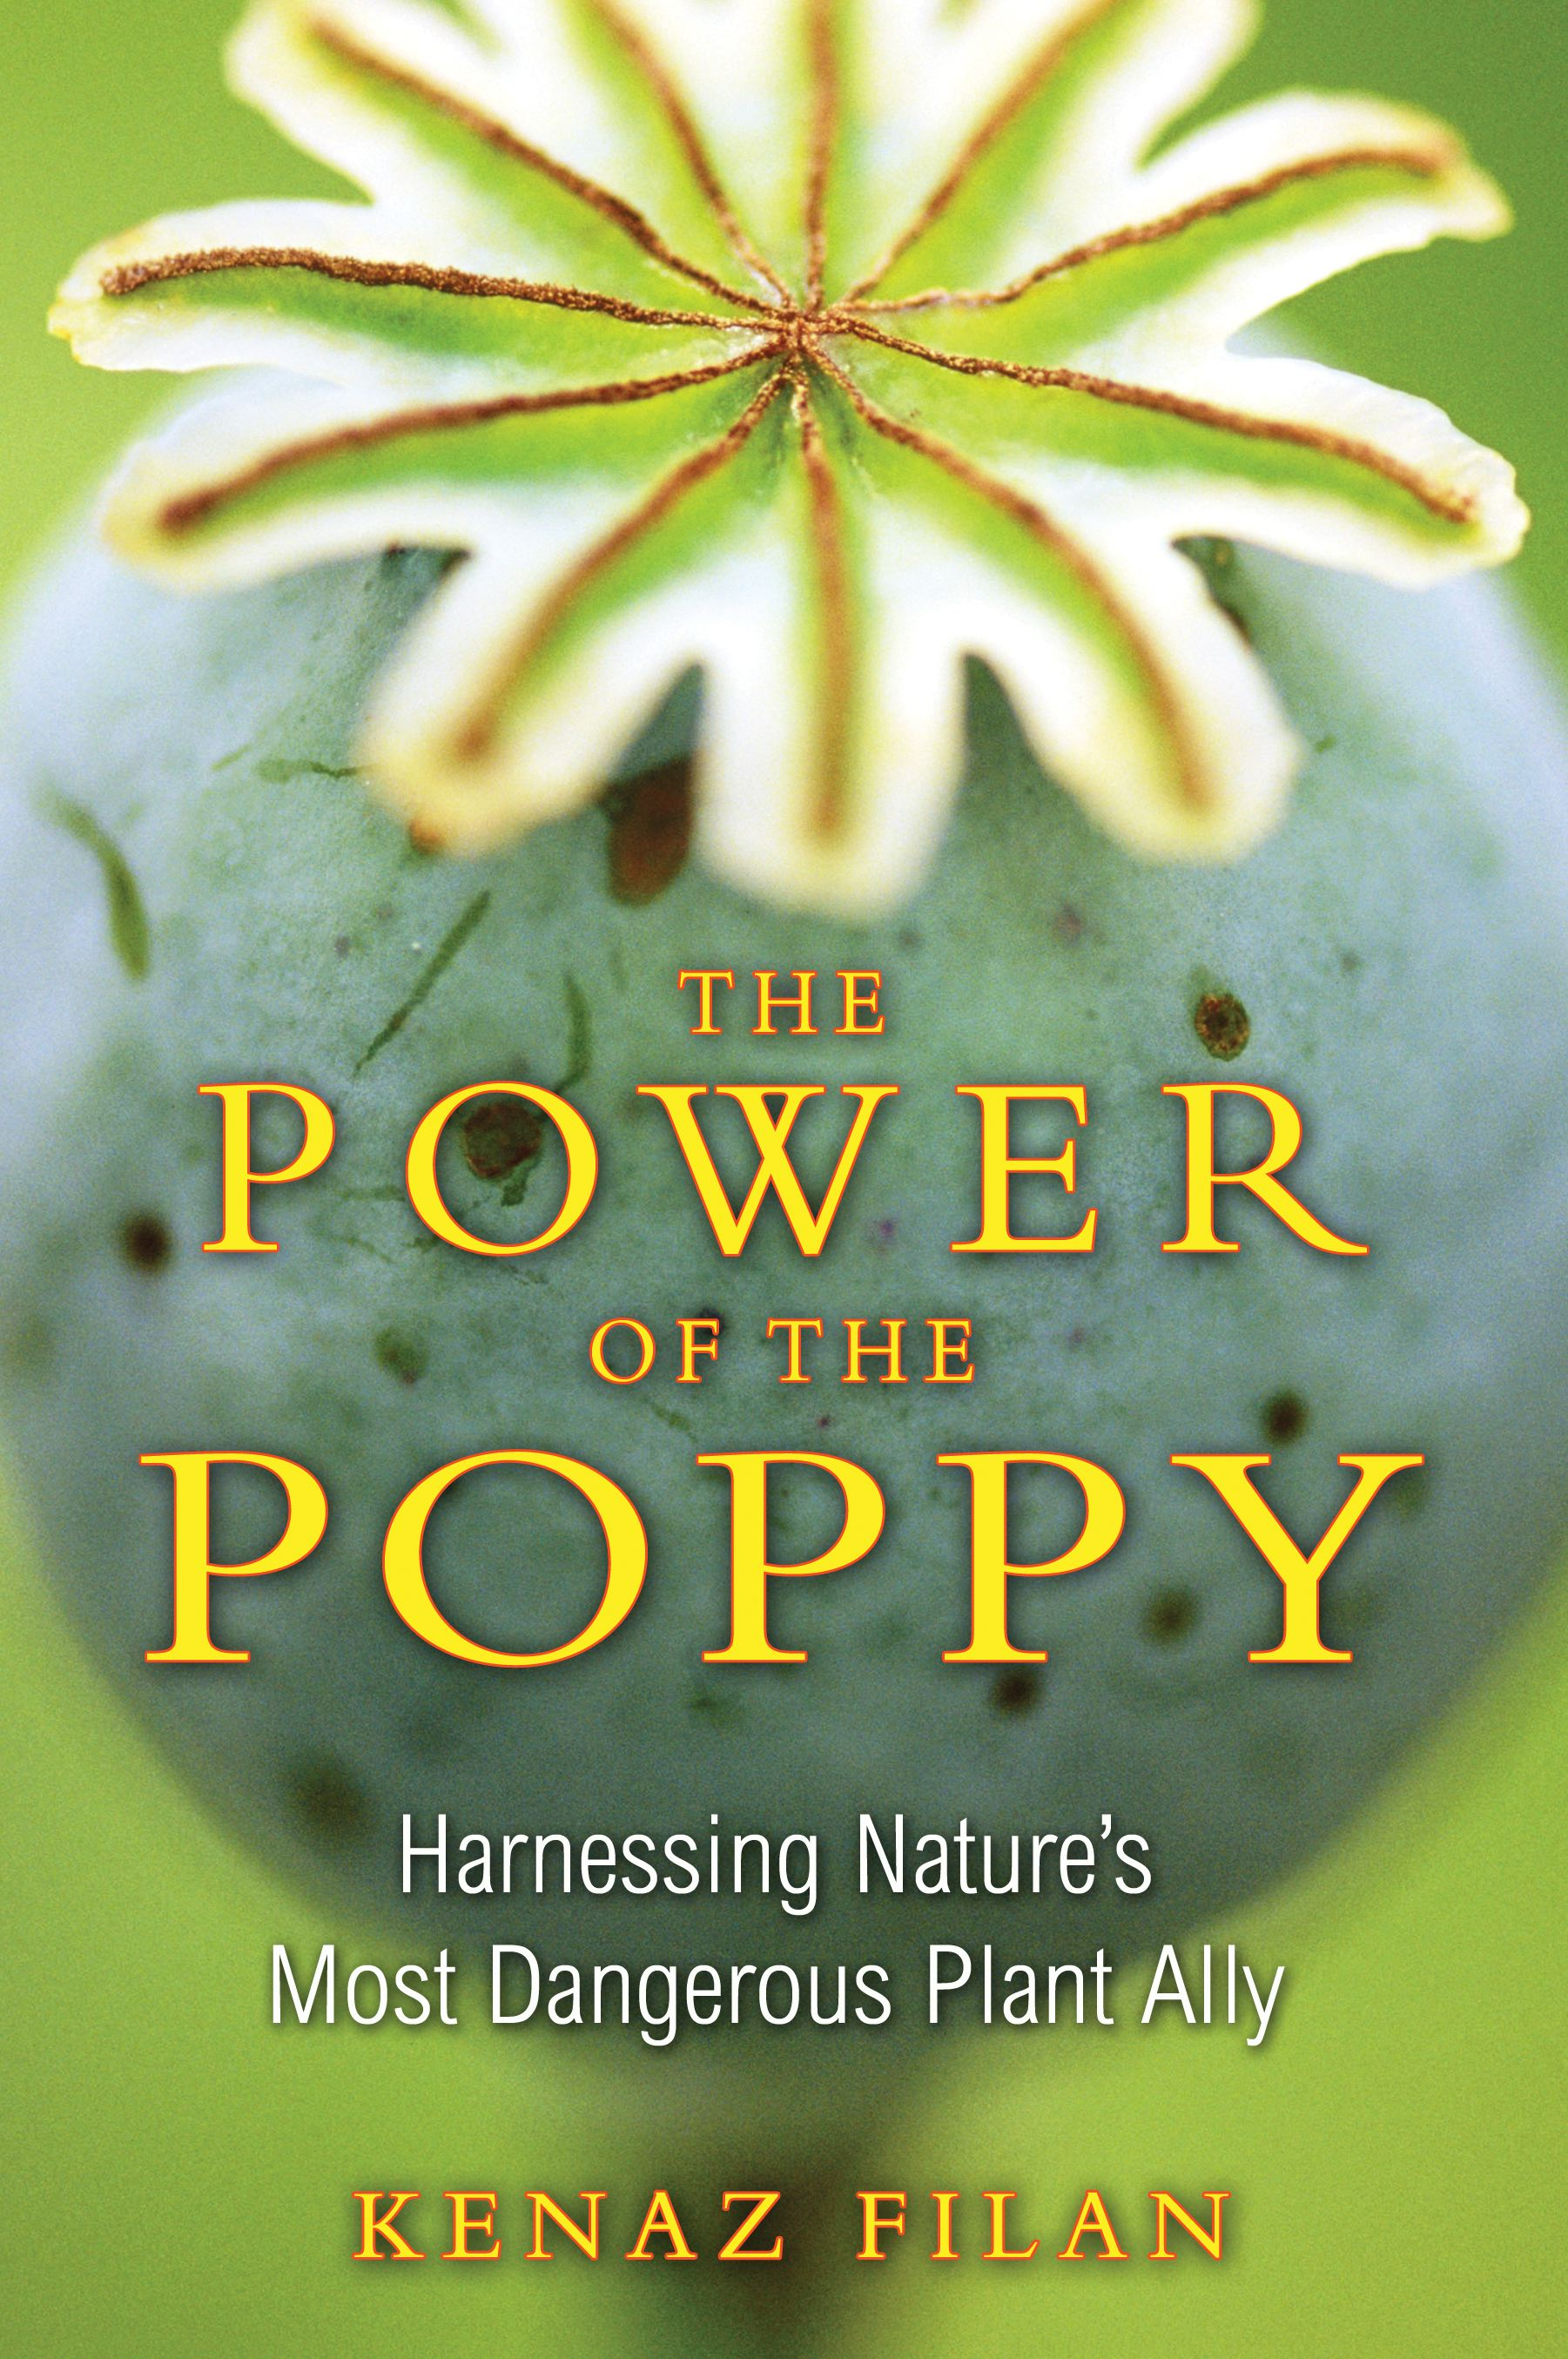 The power of the poppy 9781594773990 hr